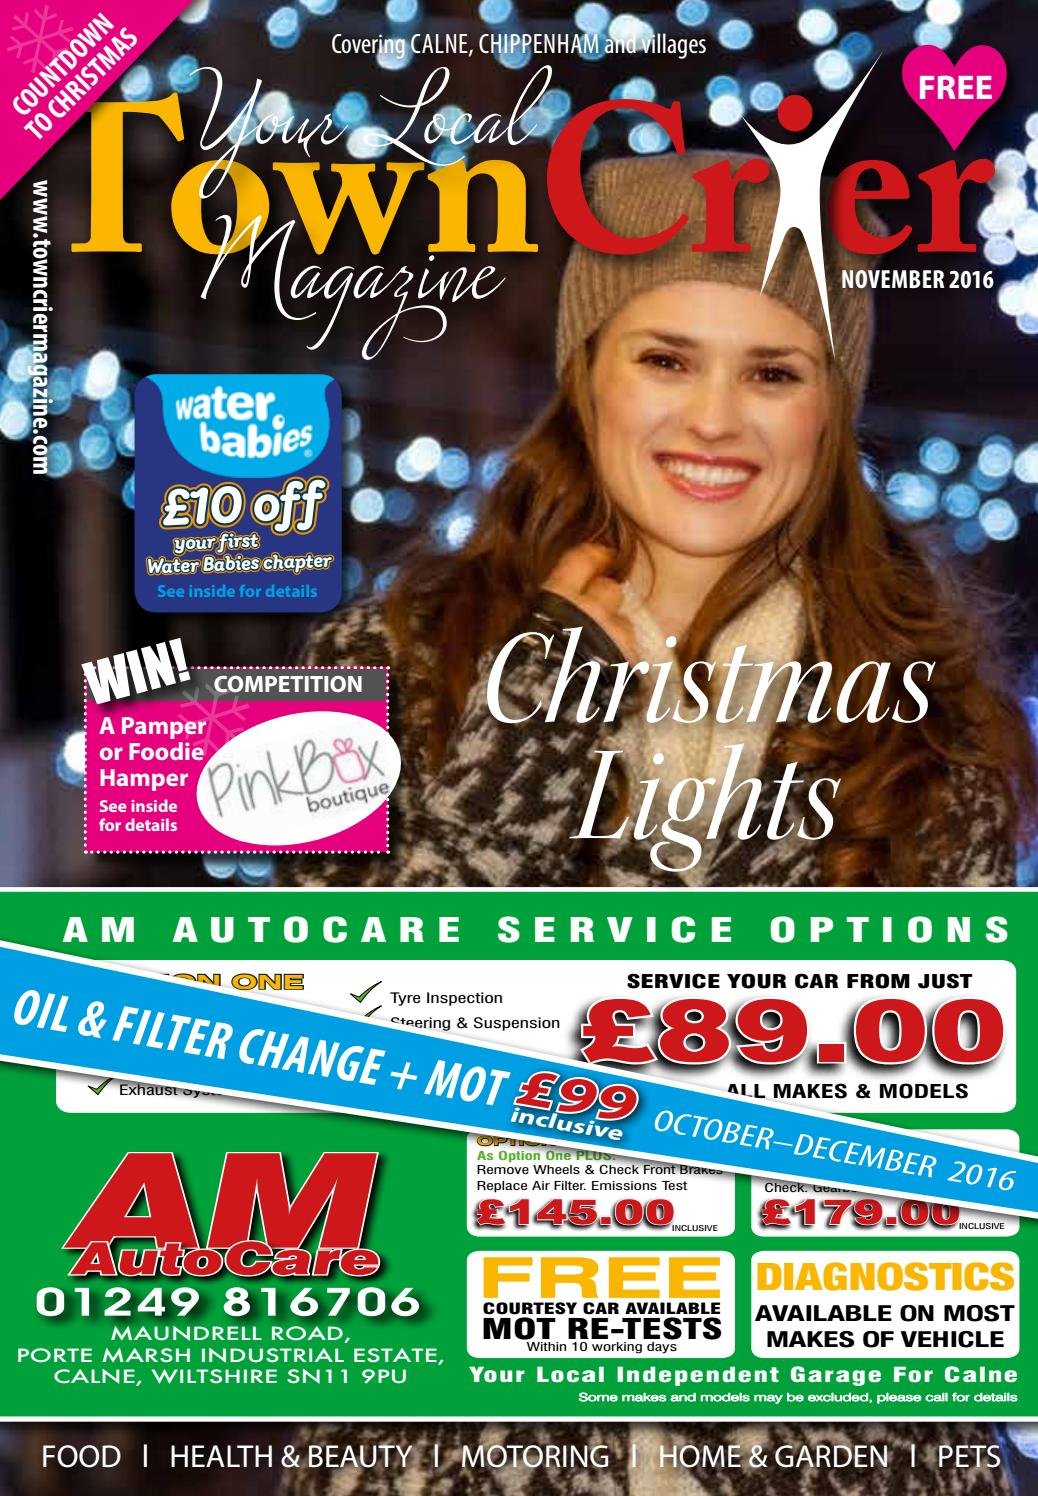 Ow 20 Oil Change >> Calne tc november 2016 small by Town Crier Magazine - Issuu